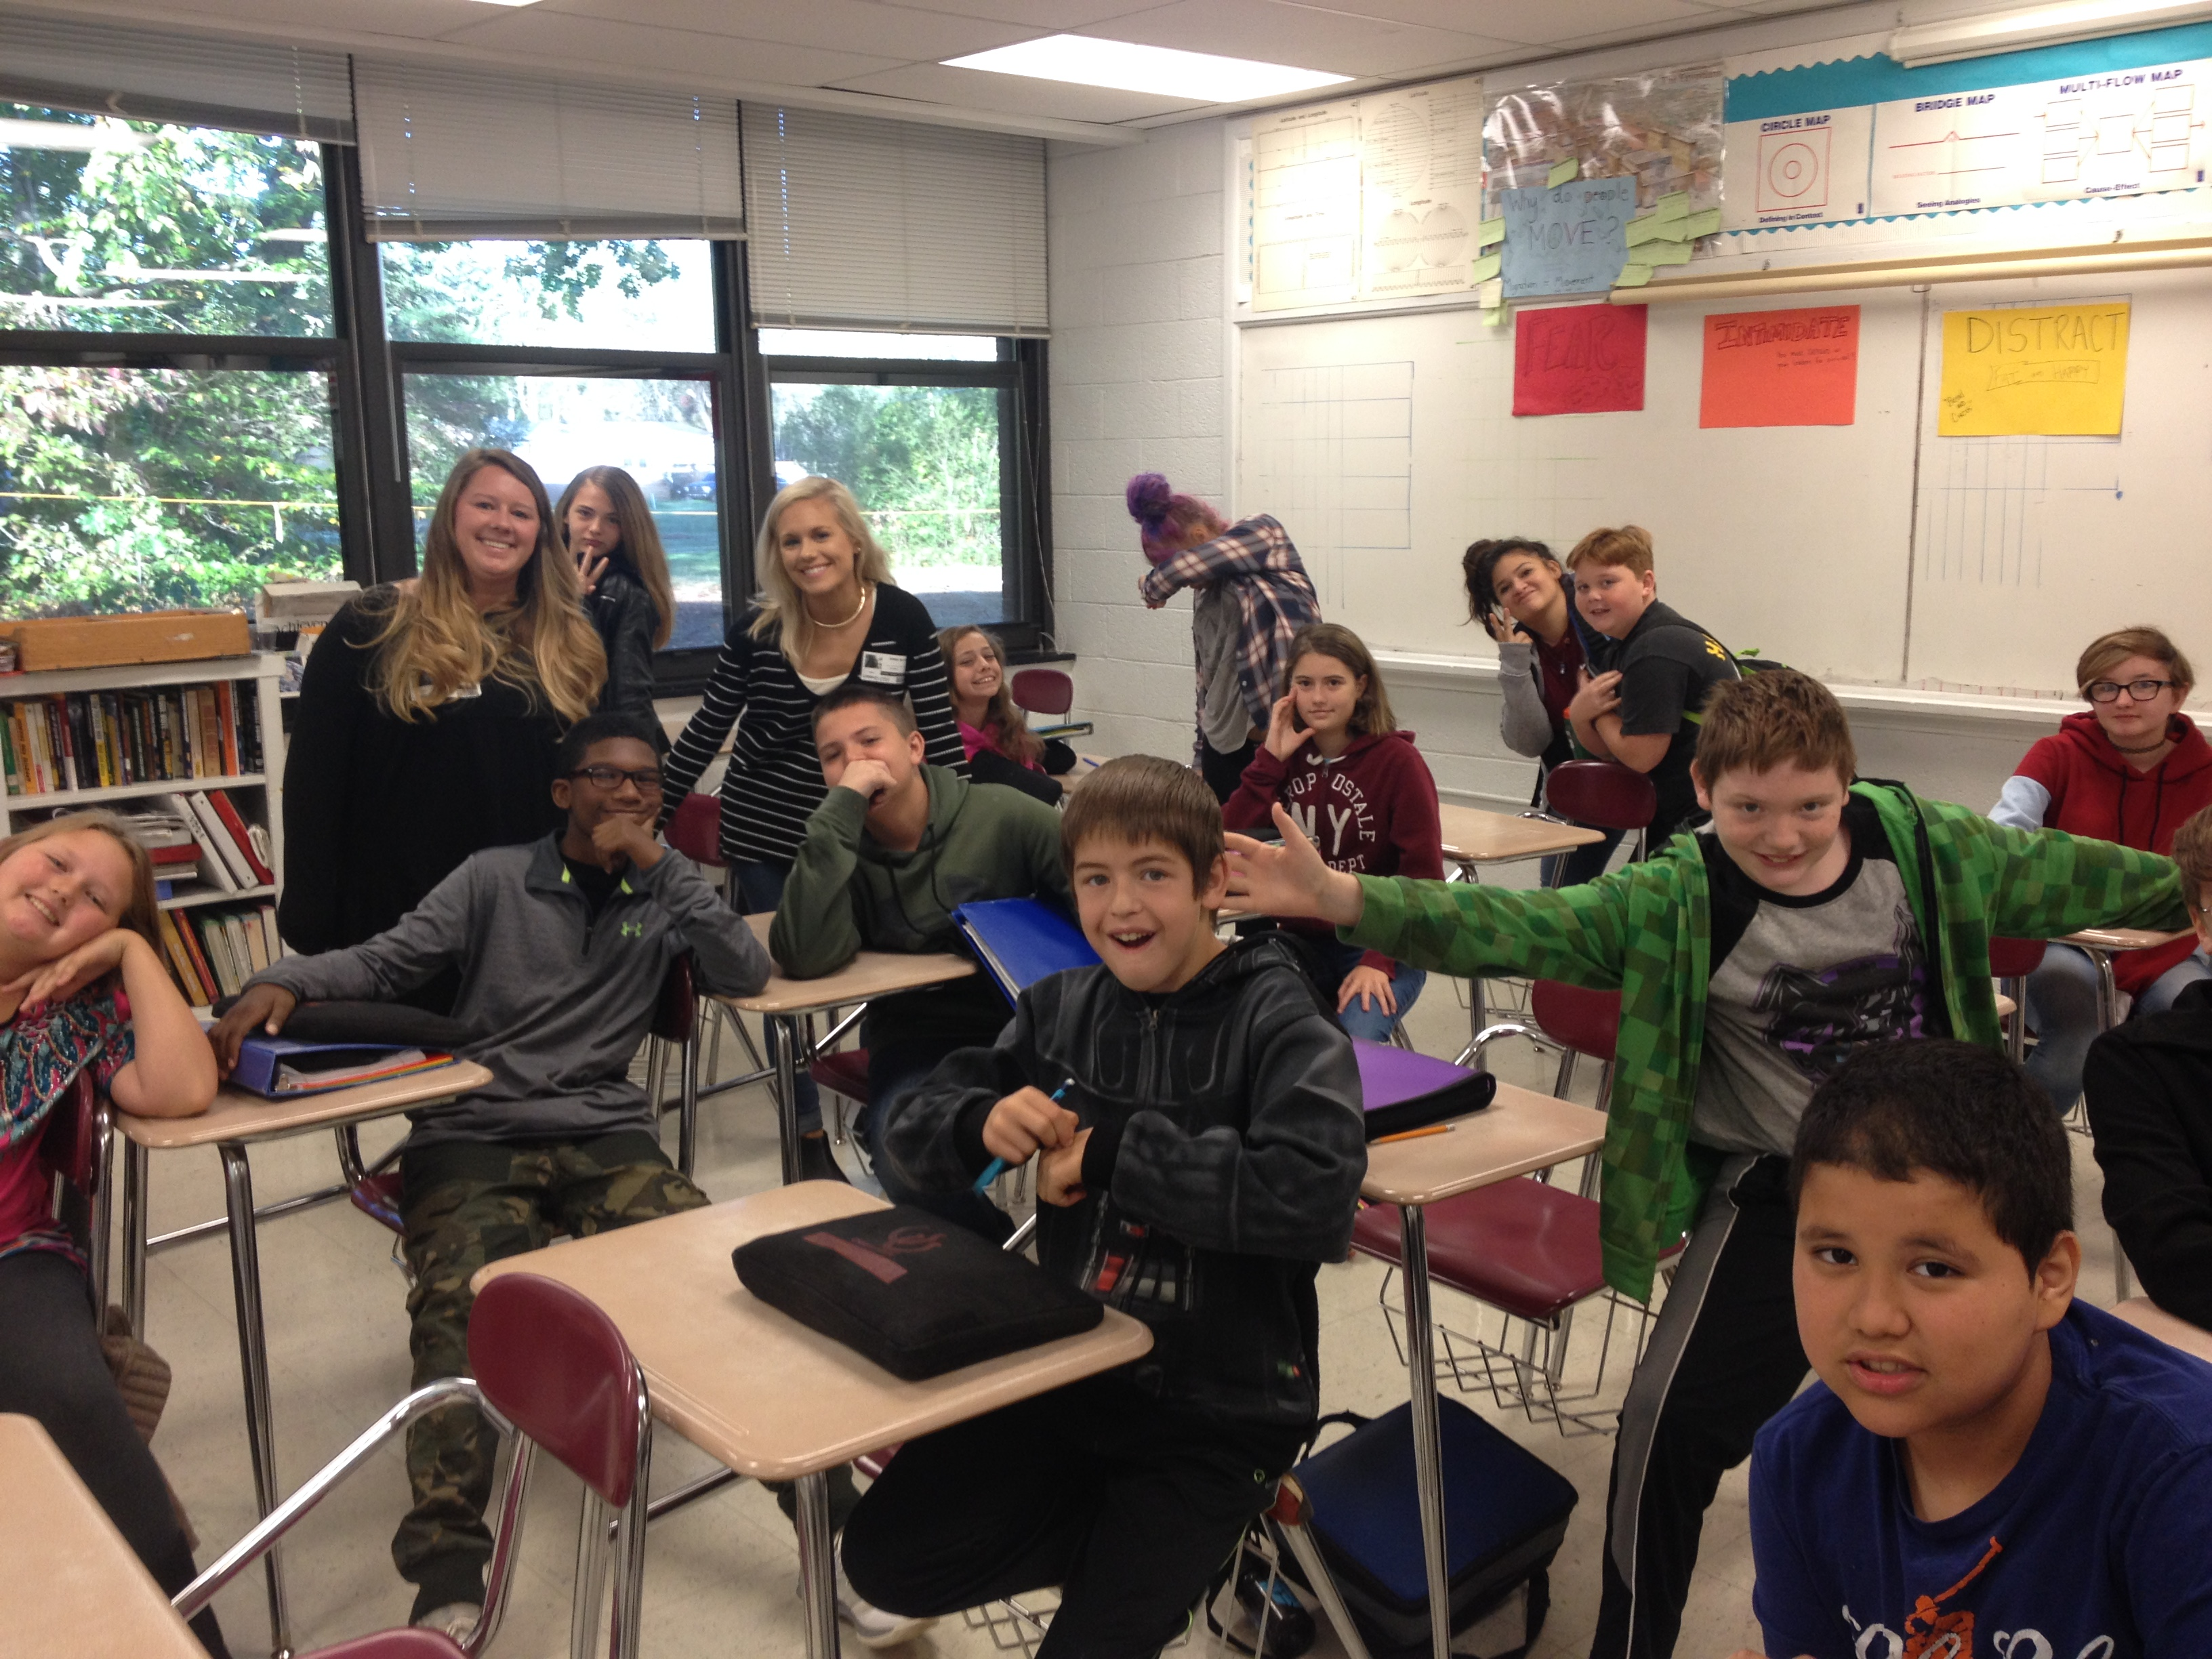 Dixon Hughes Goodman spent the day with students at Owen Middle